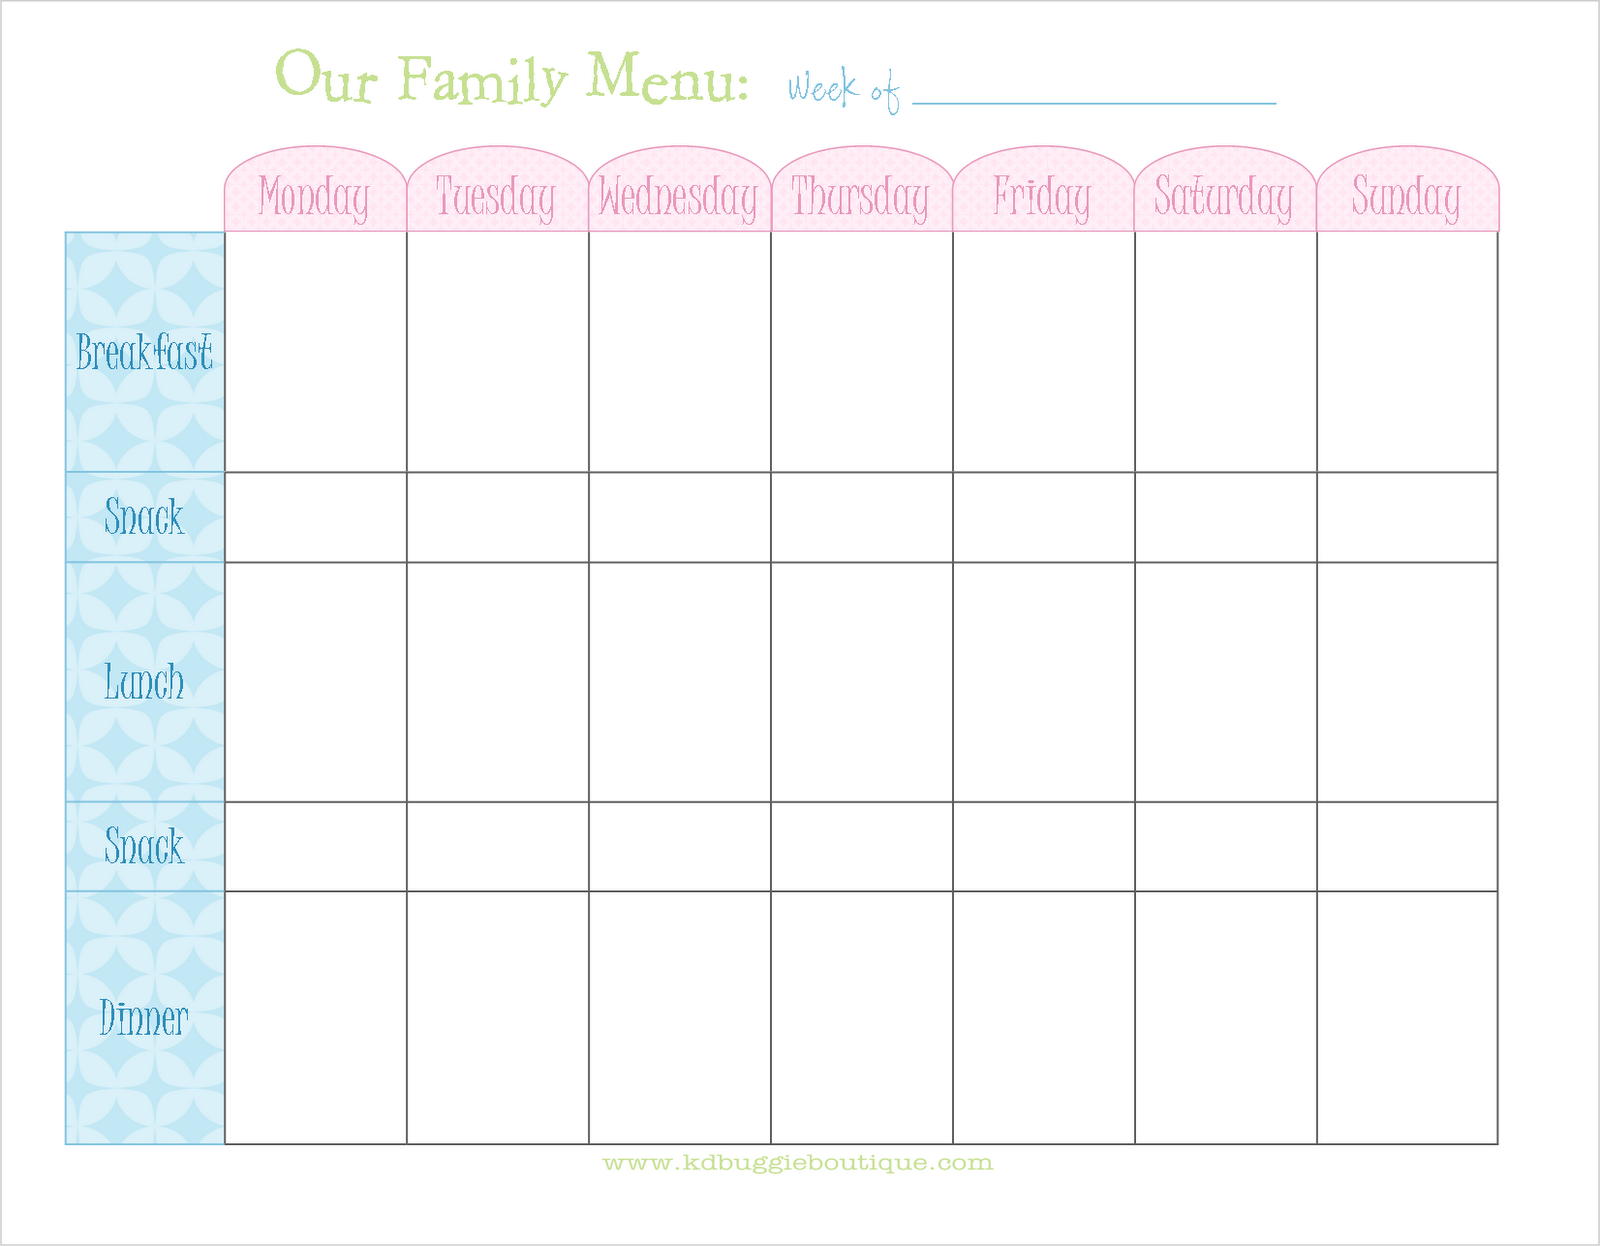 Free Weekly Menu Planner With Snacks  5 Meal Plan  Daily Weekly Schedule Template